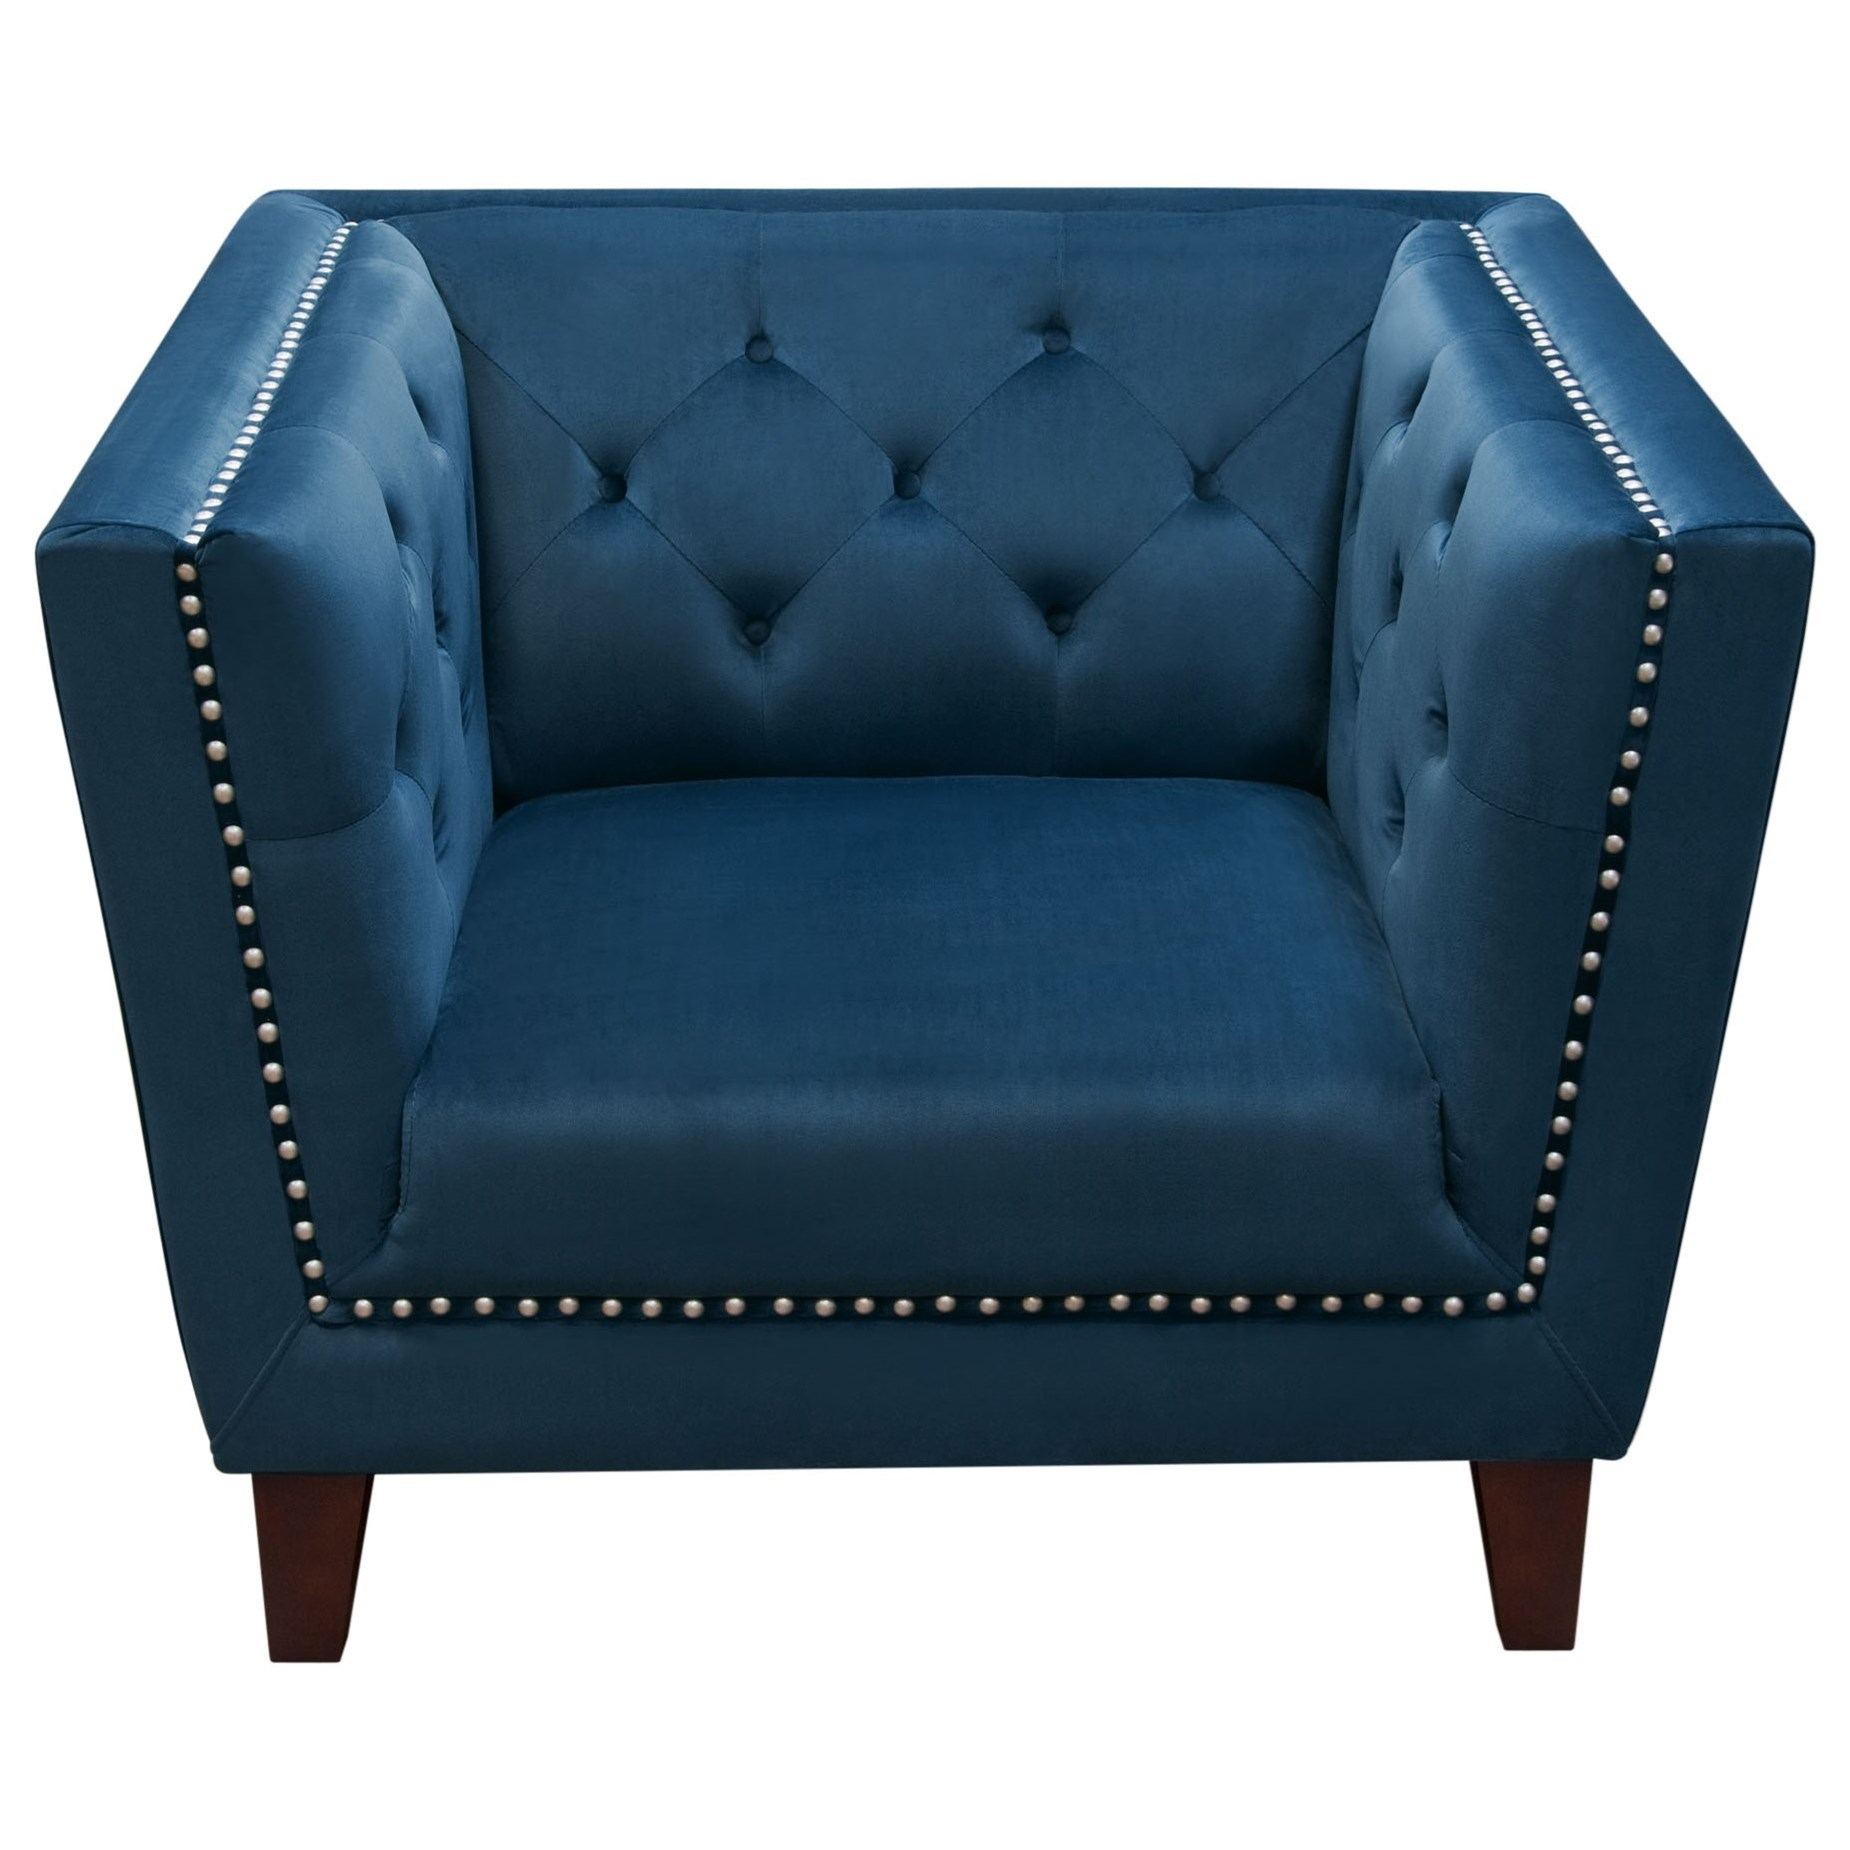 Grand Chair by Diamond Sofa at Red Knot